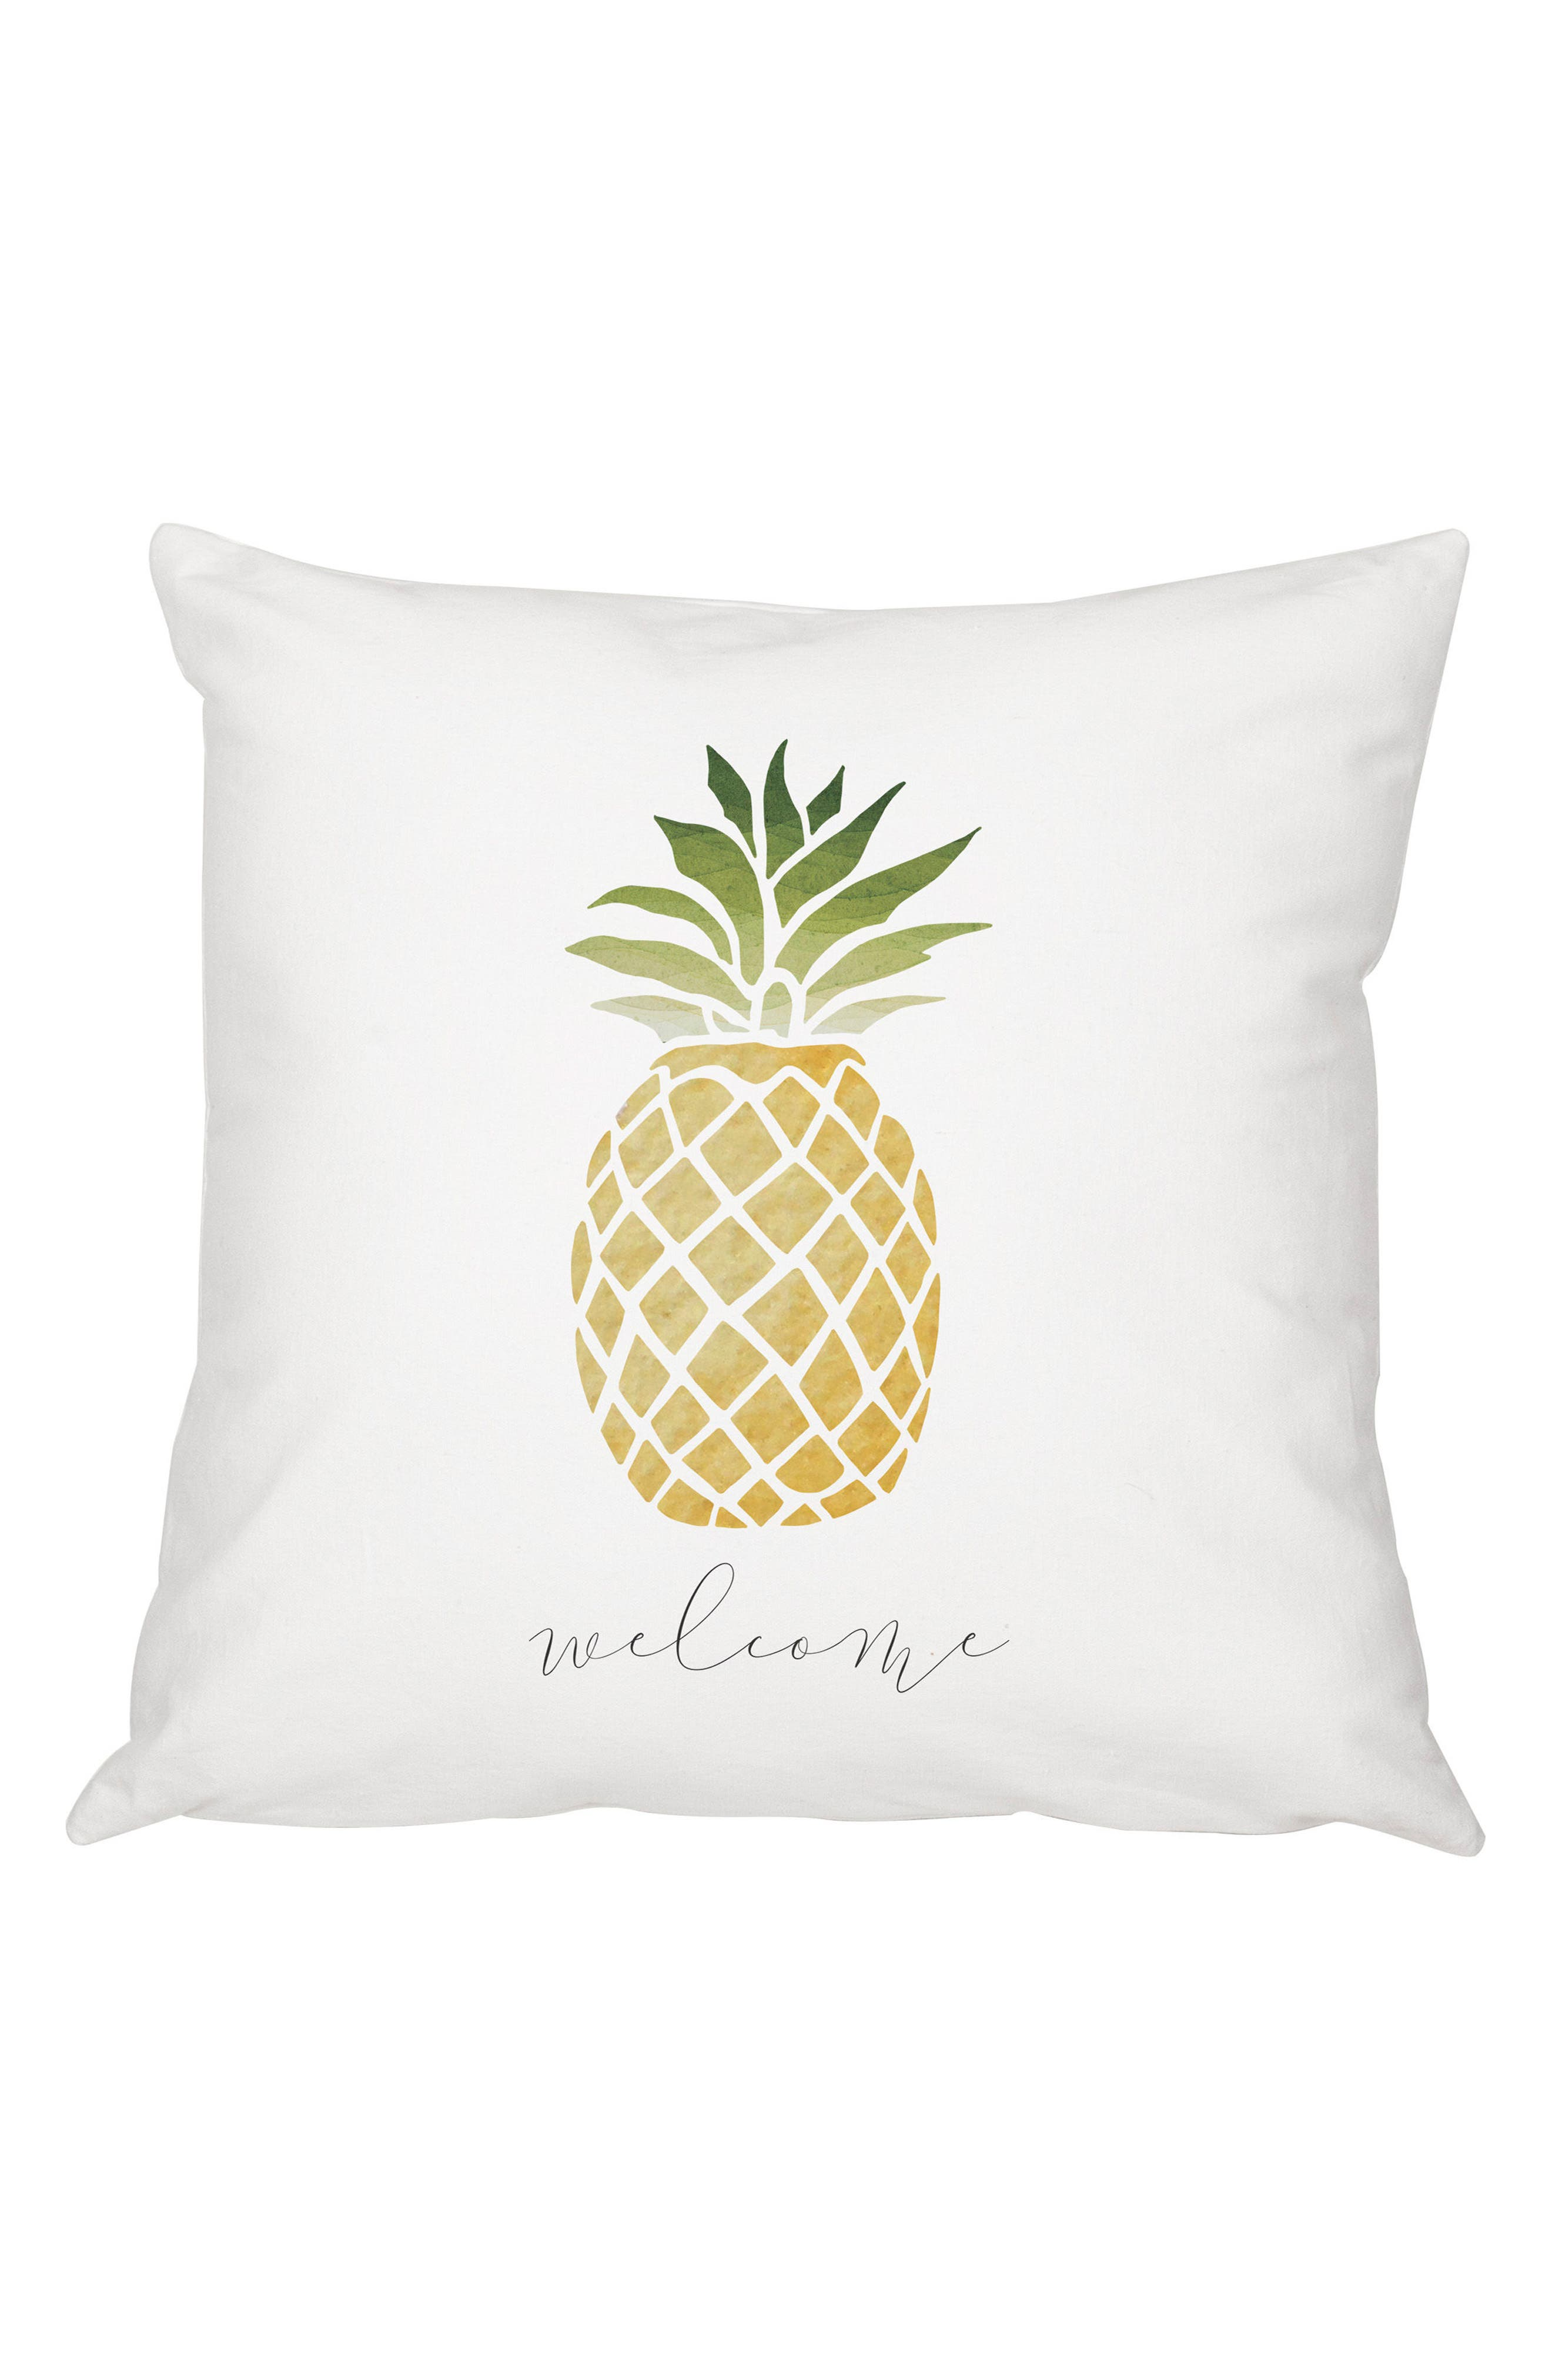 Pineapple Accent Pillow,                         Main,                         color, Multi